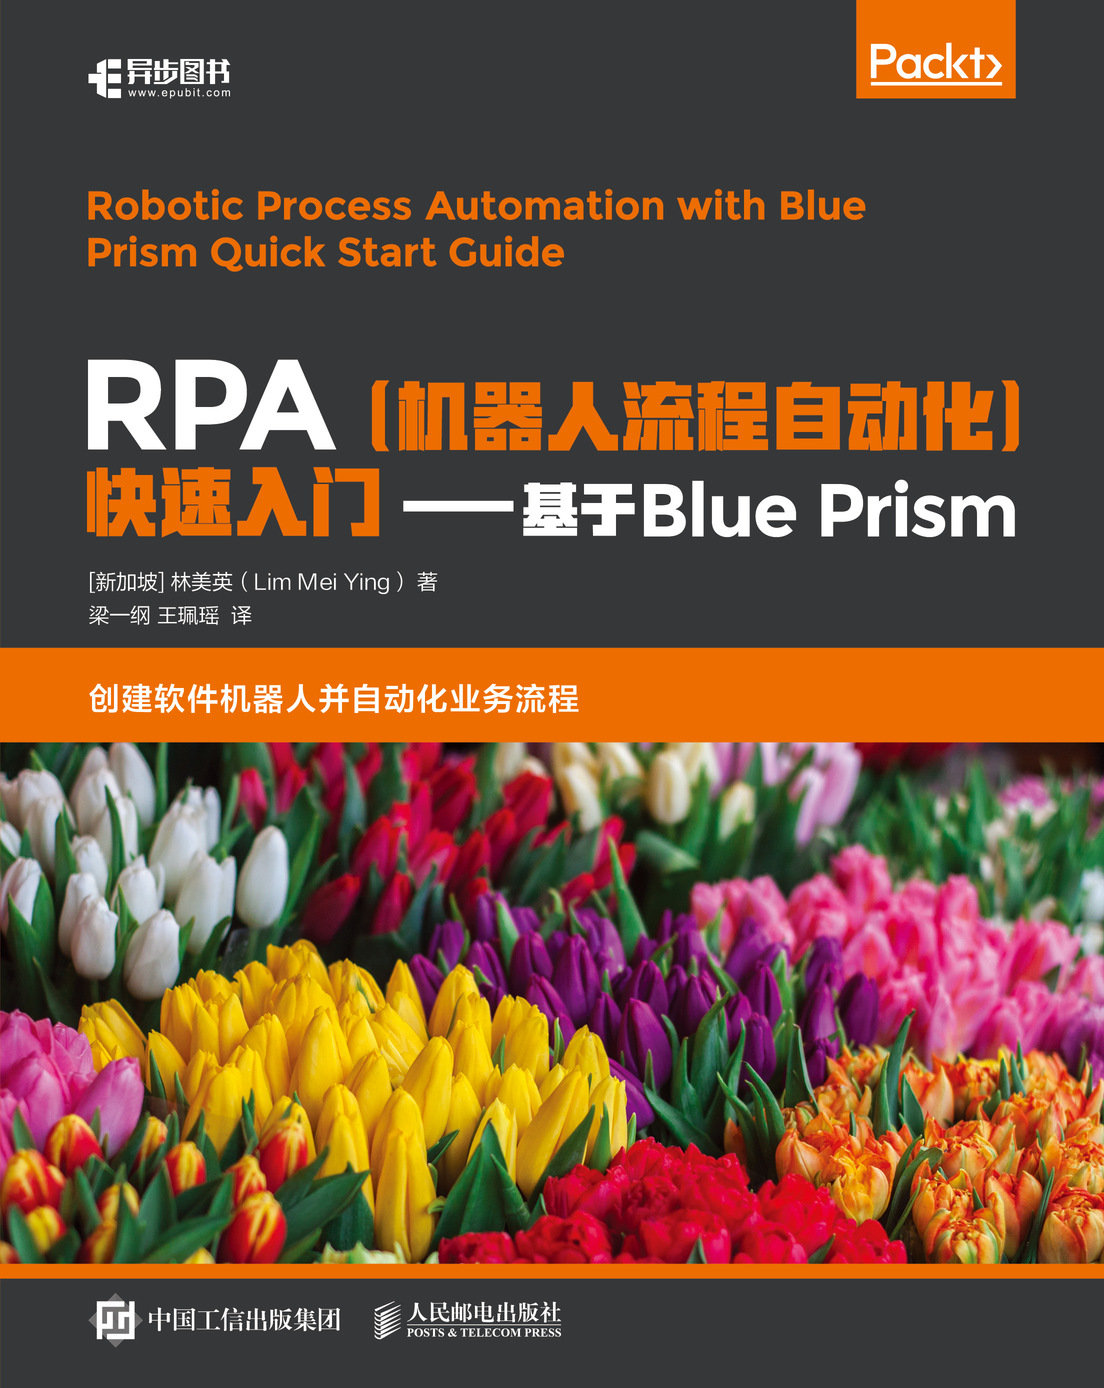 RPA 機器人流程自動化快速入門 基於 Blue Prism (Robotic Process Automation with Blue Prism Quick Start Guide: Create software robots and automate business processes)-preview-1